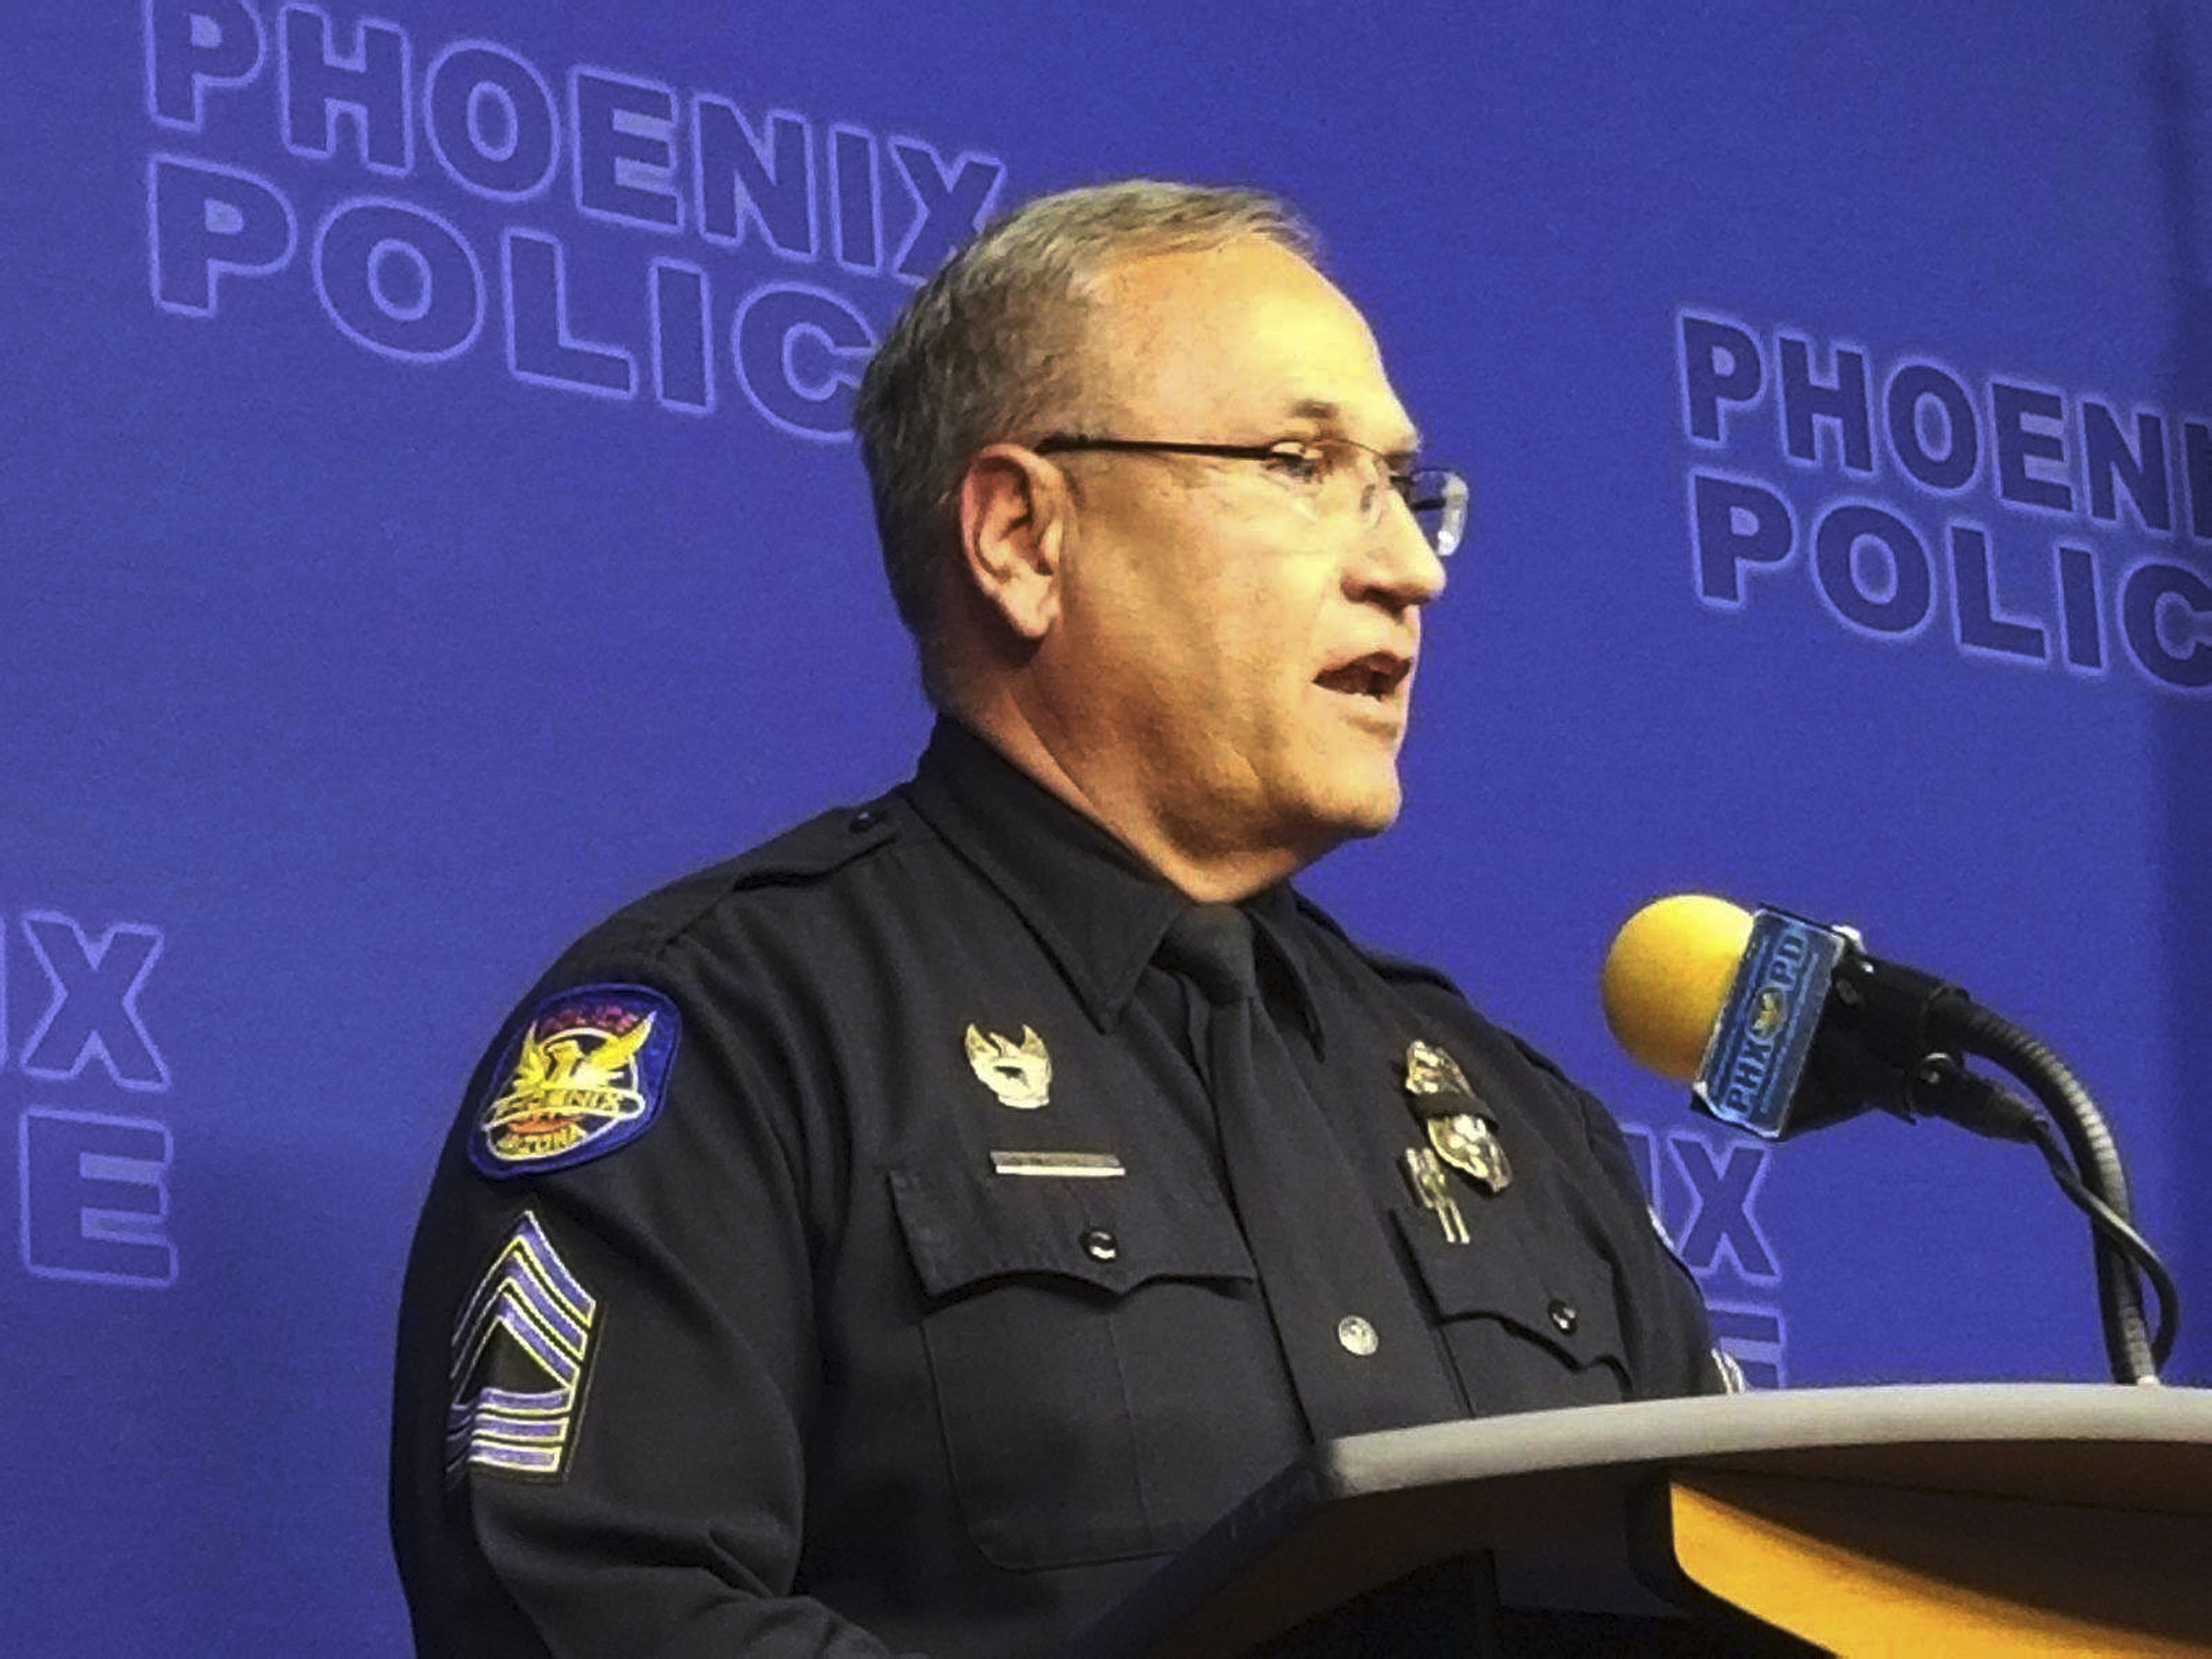 Phoenix Police spokesman Tommy Thompson speaks at a news conference, Wednesday, Jan. 9, 2019, in Phoenix, about the investigation of a woman at a long-term care facility who gave birth. The Phoenix woman, who is in a vegetative state and was sexually assaulted at the facility and had a baby, is recovering at a hospital along with her child, authorities said. (AP Photo/Terry Tang)